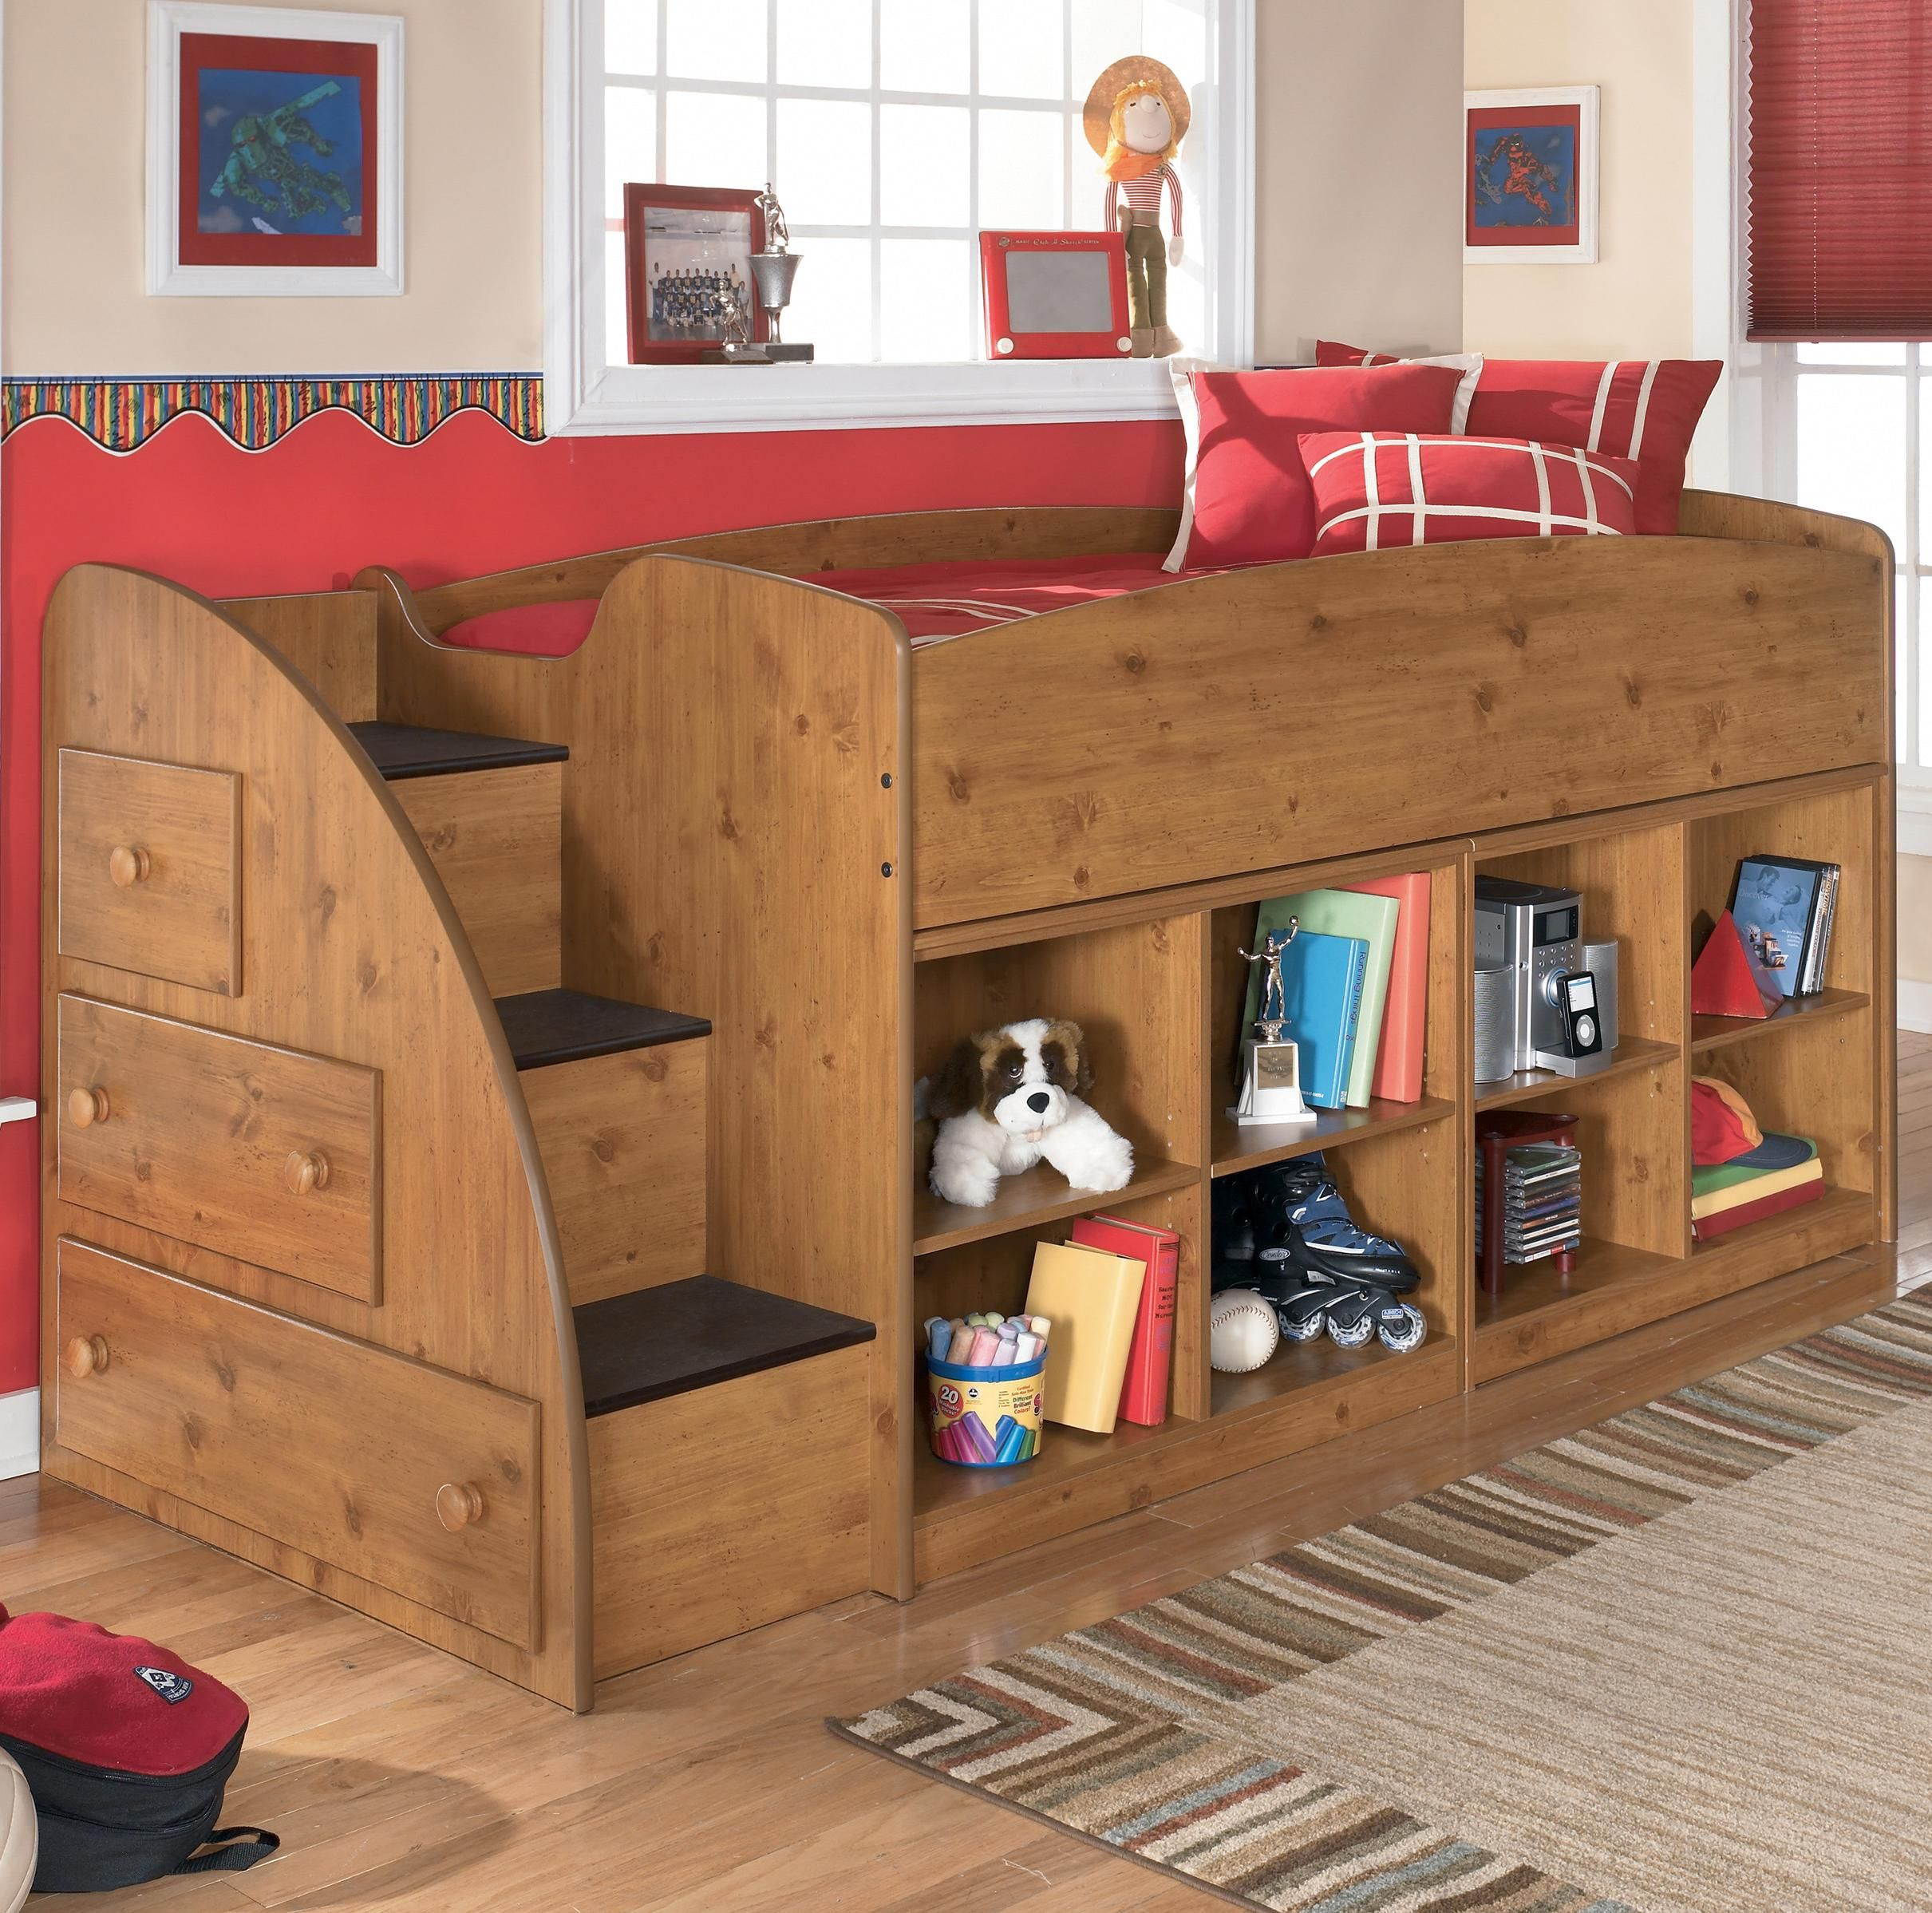 Add The Loft Bed With Tons Of Storage To Your Youth Bedroom Storage Steps On The End Make It Easy And Fun To Re Kids Bedroom Space Kid Beds Cool Kids